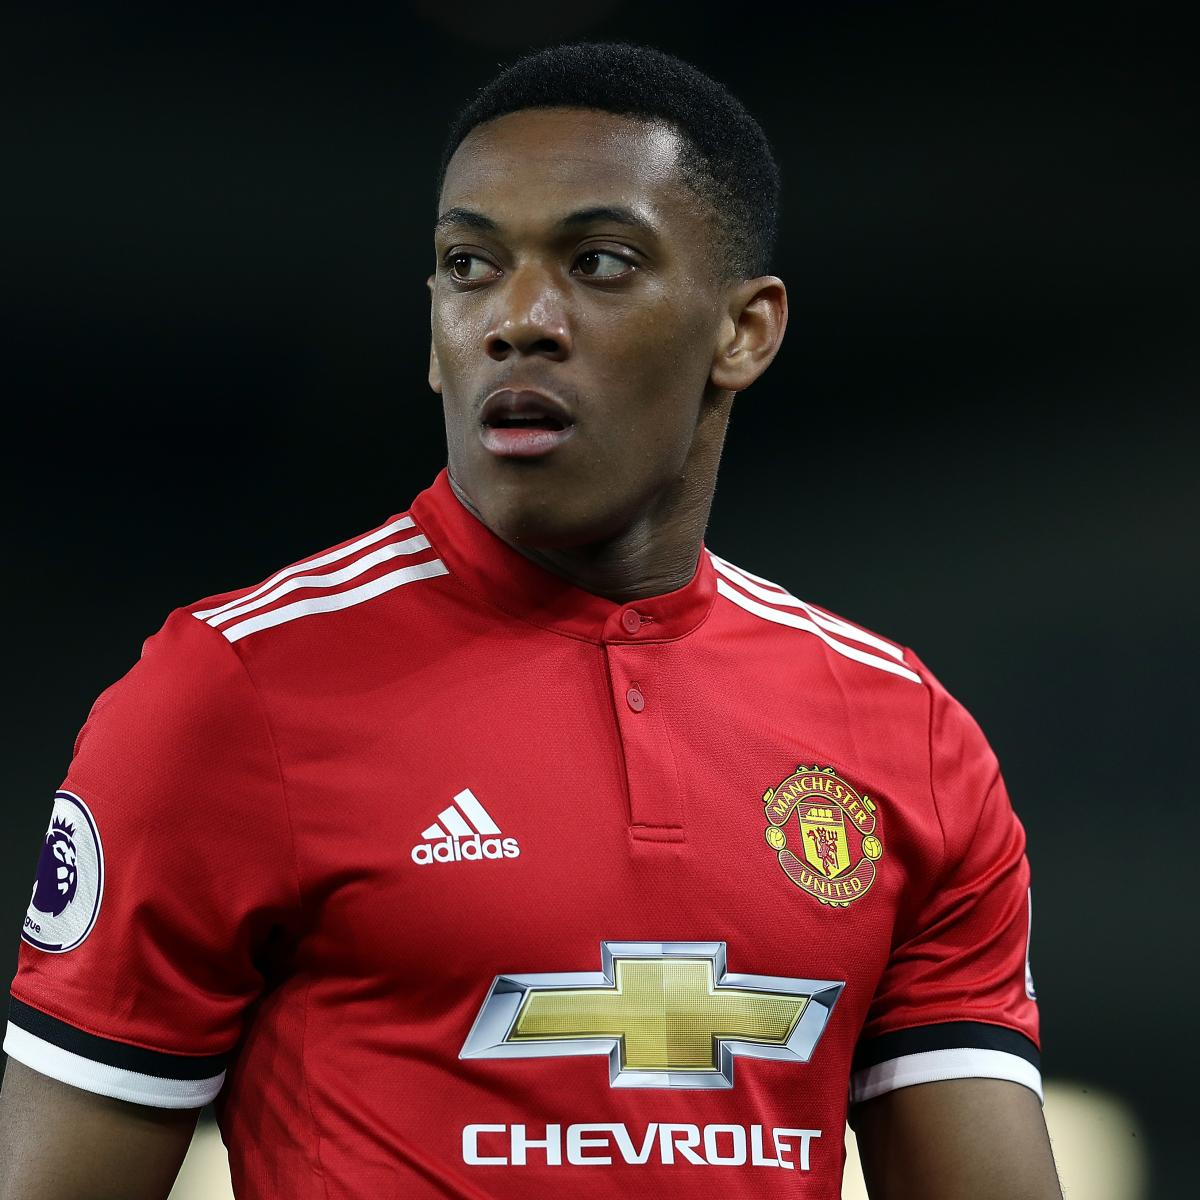 Manchester United Transfer News Latest Rumours On Lucas: Manchester United Transfer News: Latest Anthony Martial